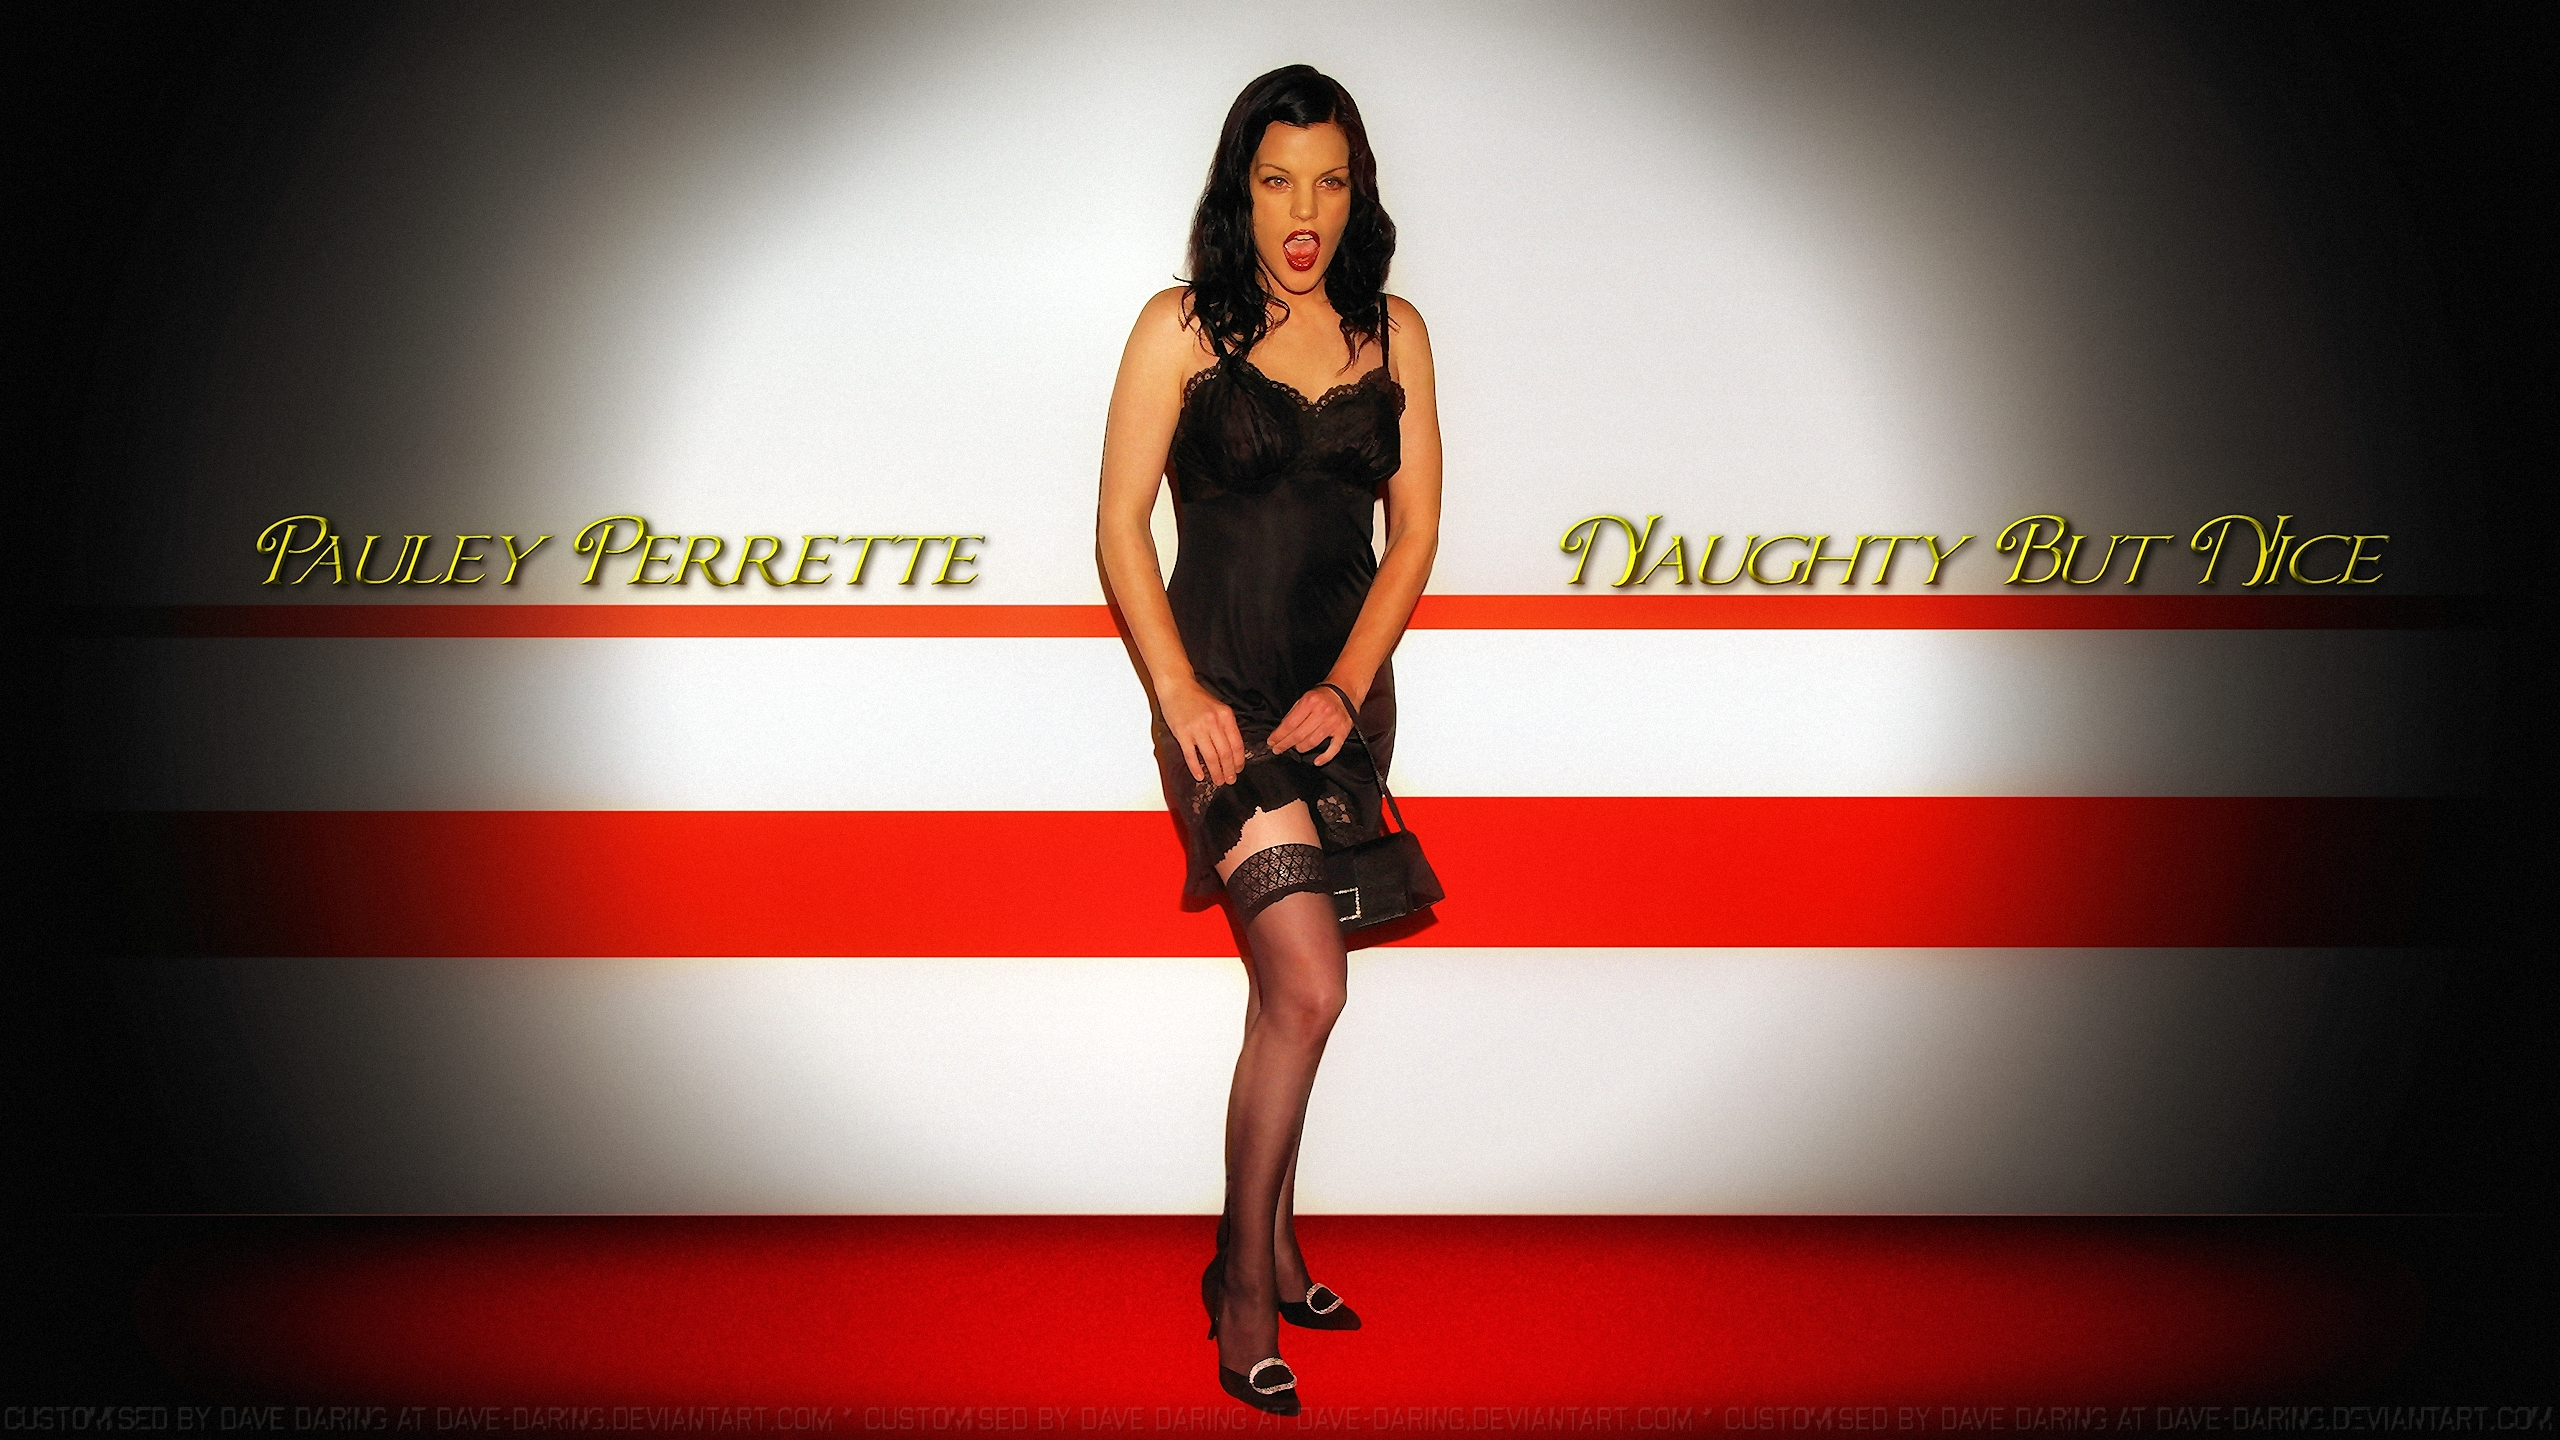 Pauley Perrette Stocking tops by Dave-Daring